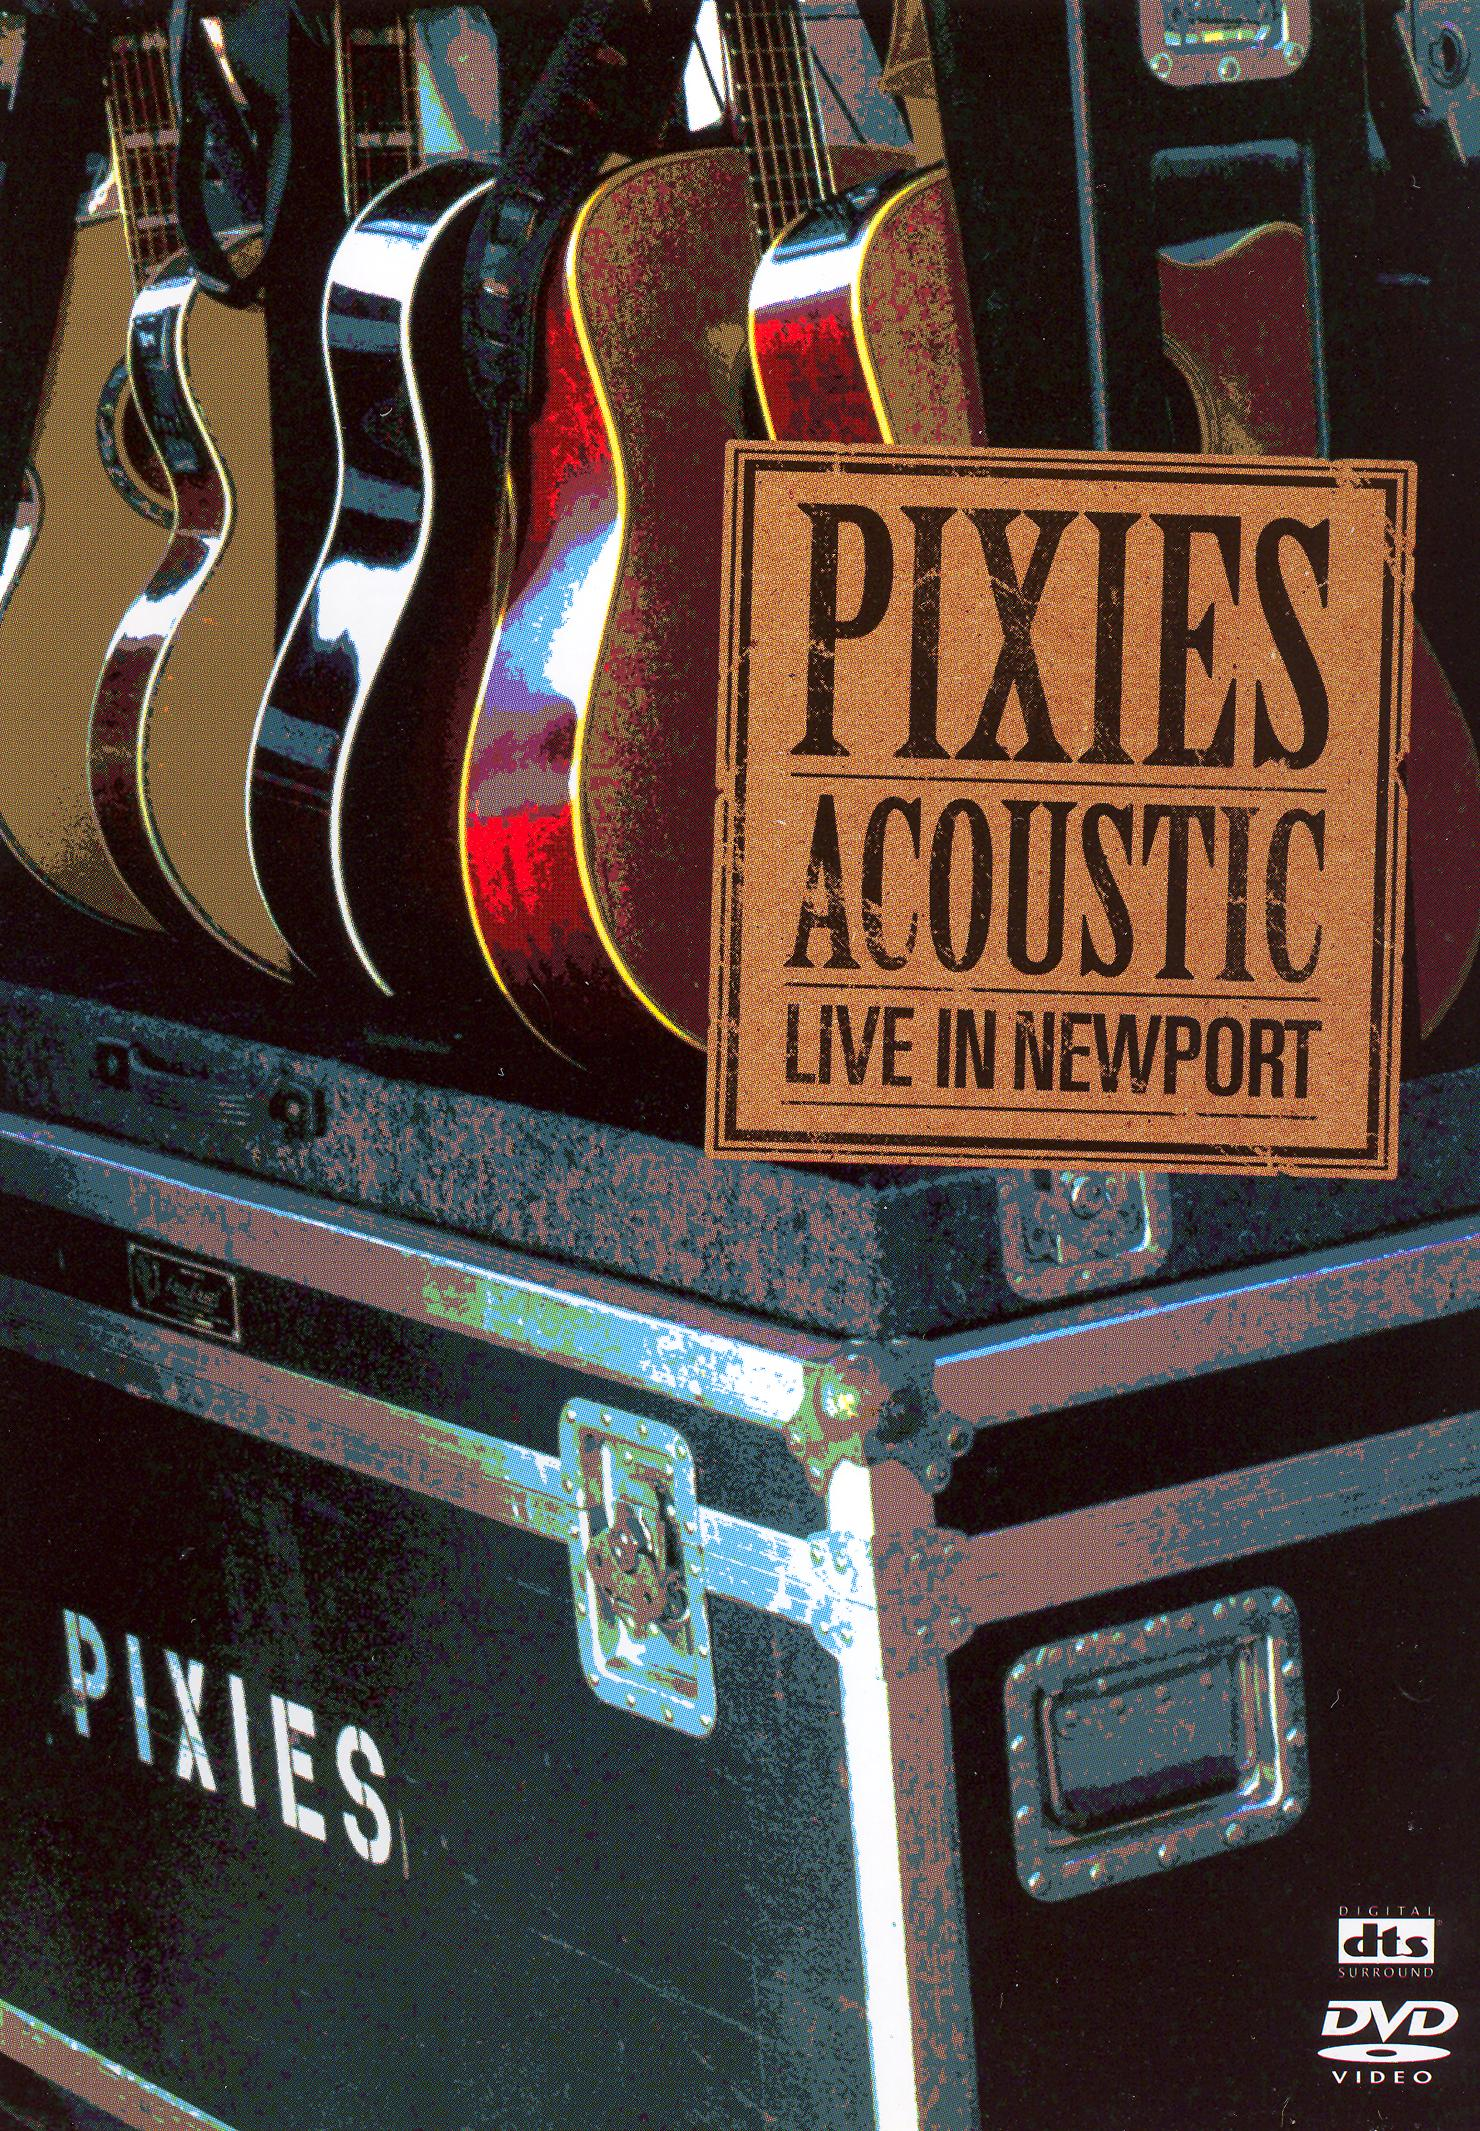 Pixies: Acoustic - Live in Newport